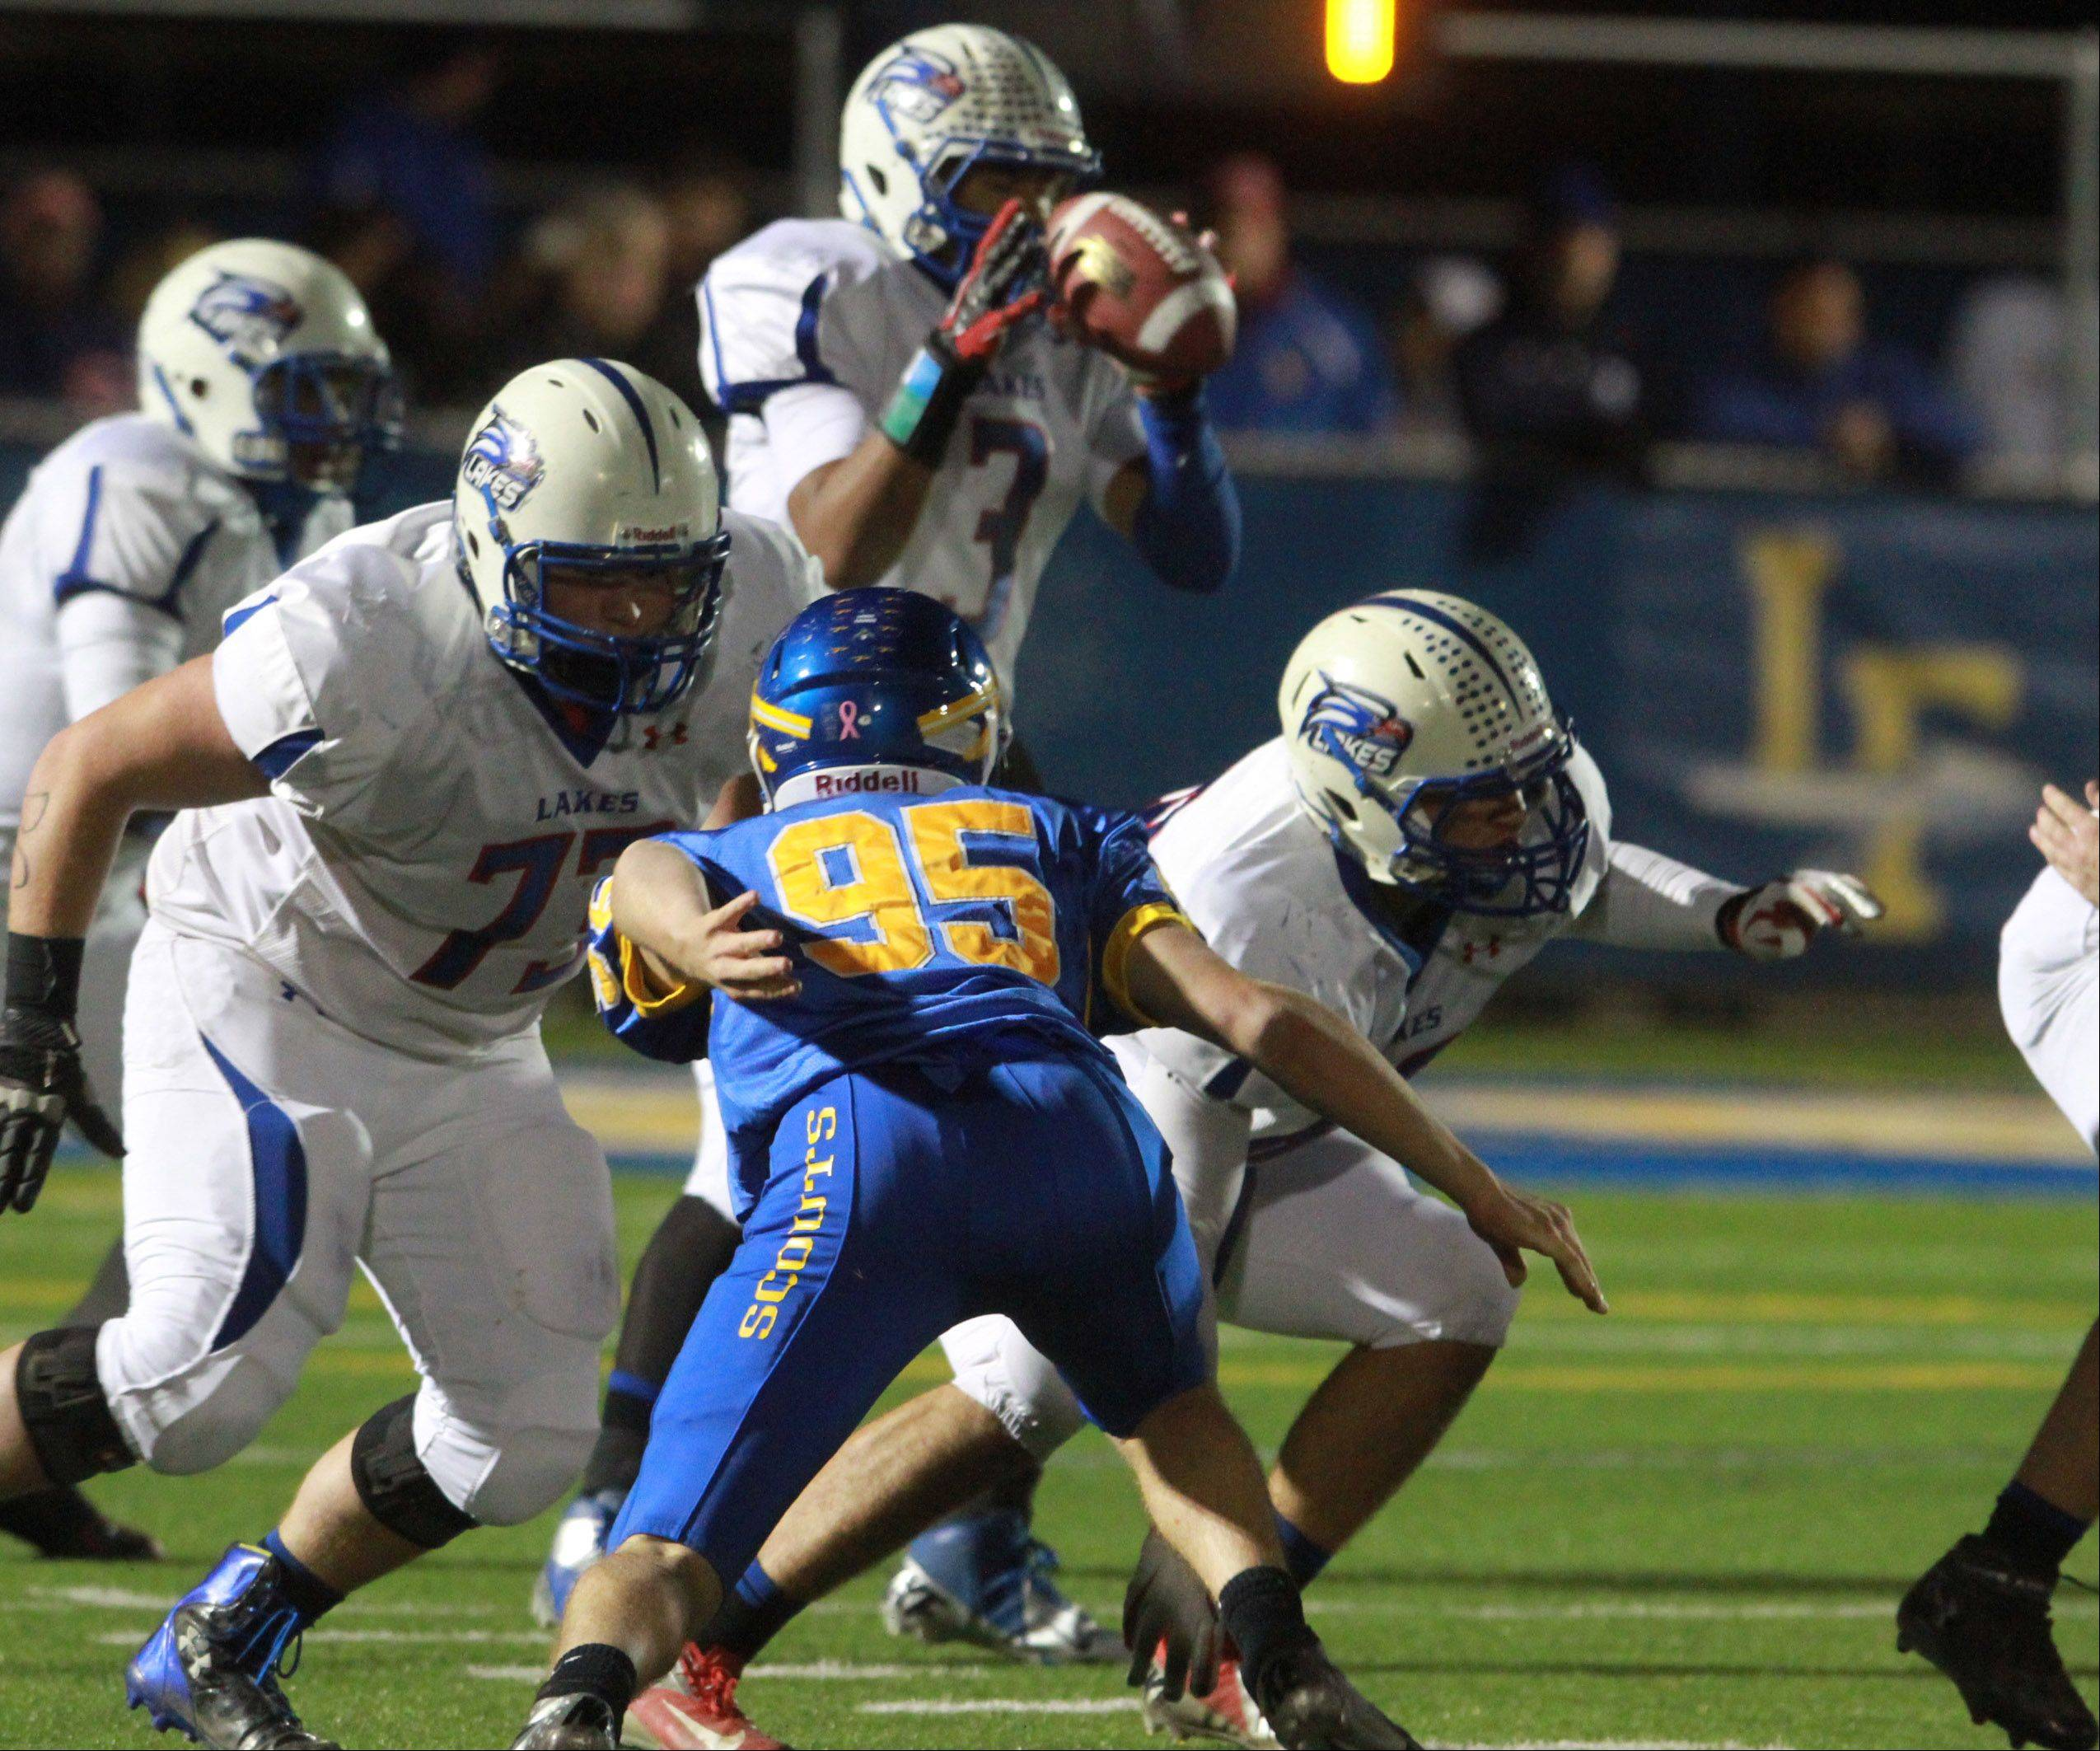 Playoffs -Round Two- Photos from the Lakes at Lake Forest football game on Friday, Nov. 2.